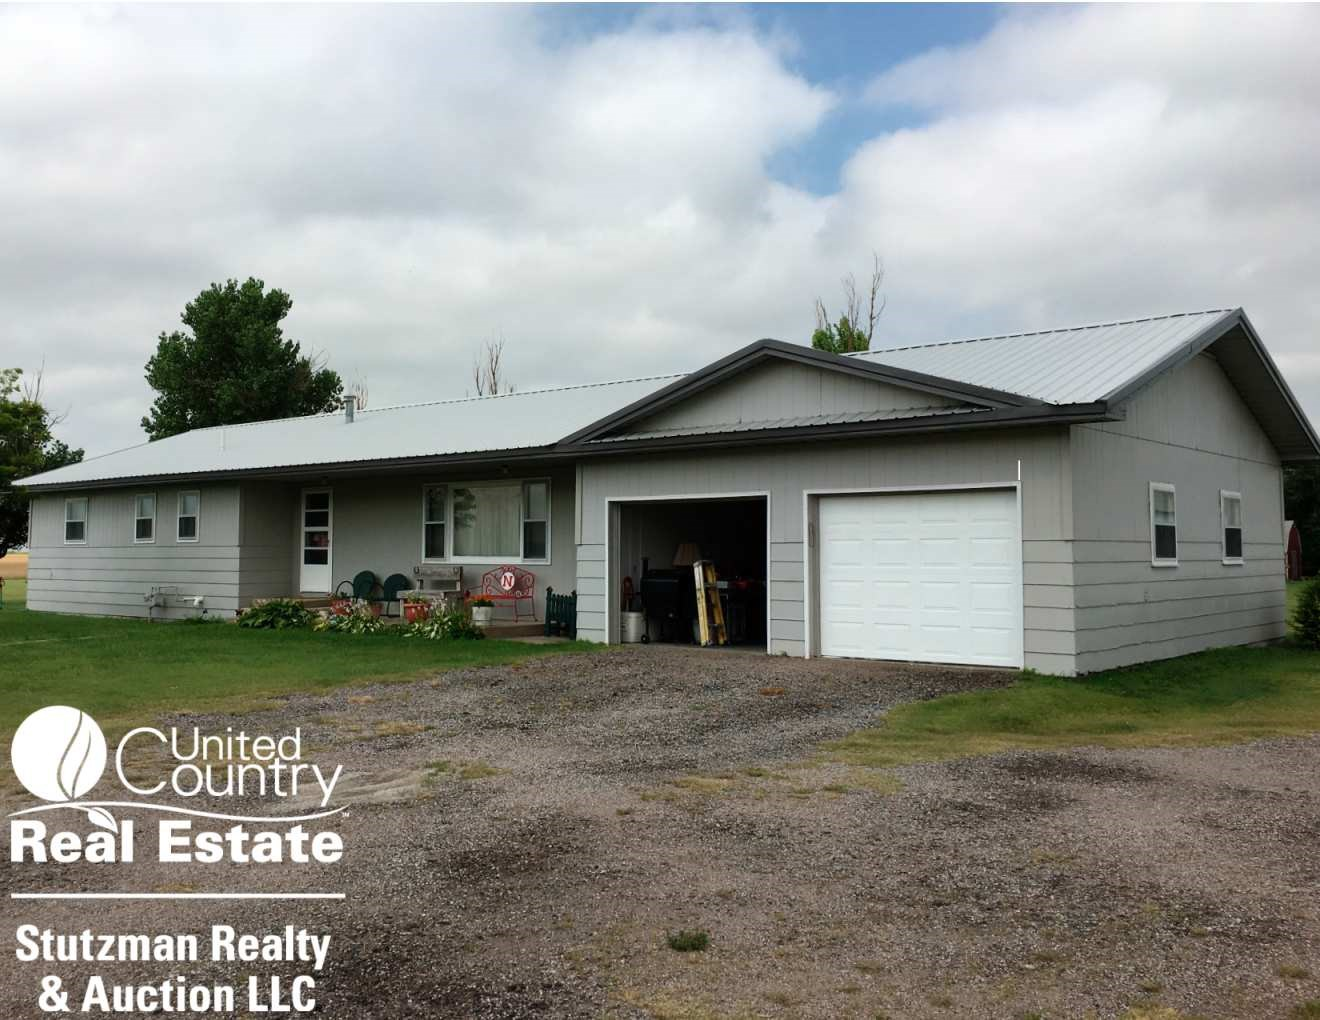 AFFORDABLE COUNTRY HOME FOR SALE IN ULYSSES, KS